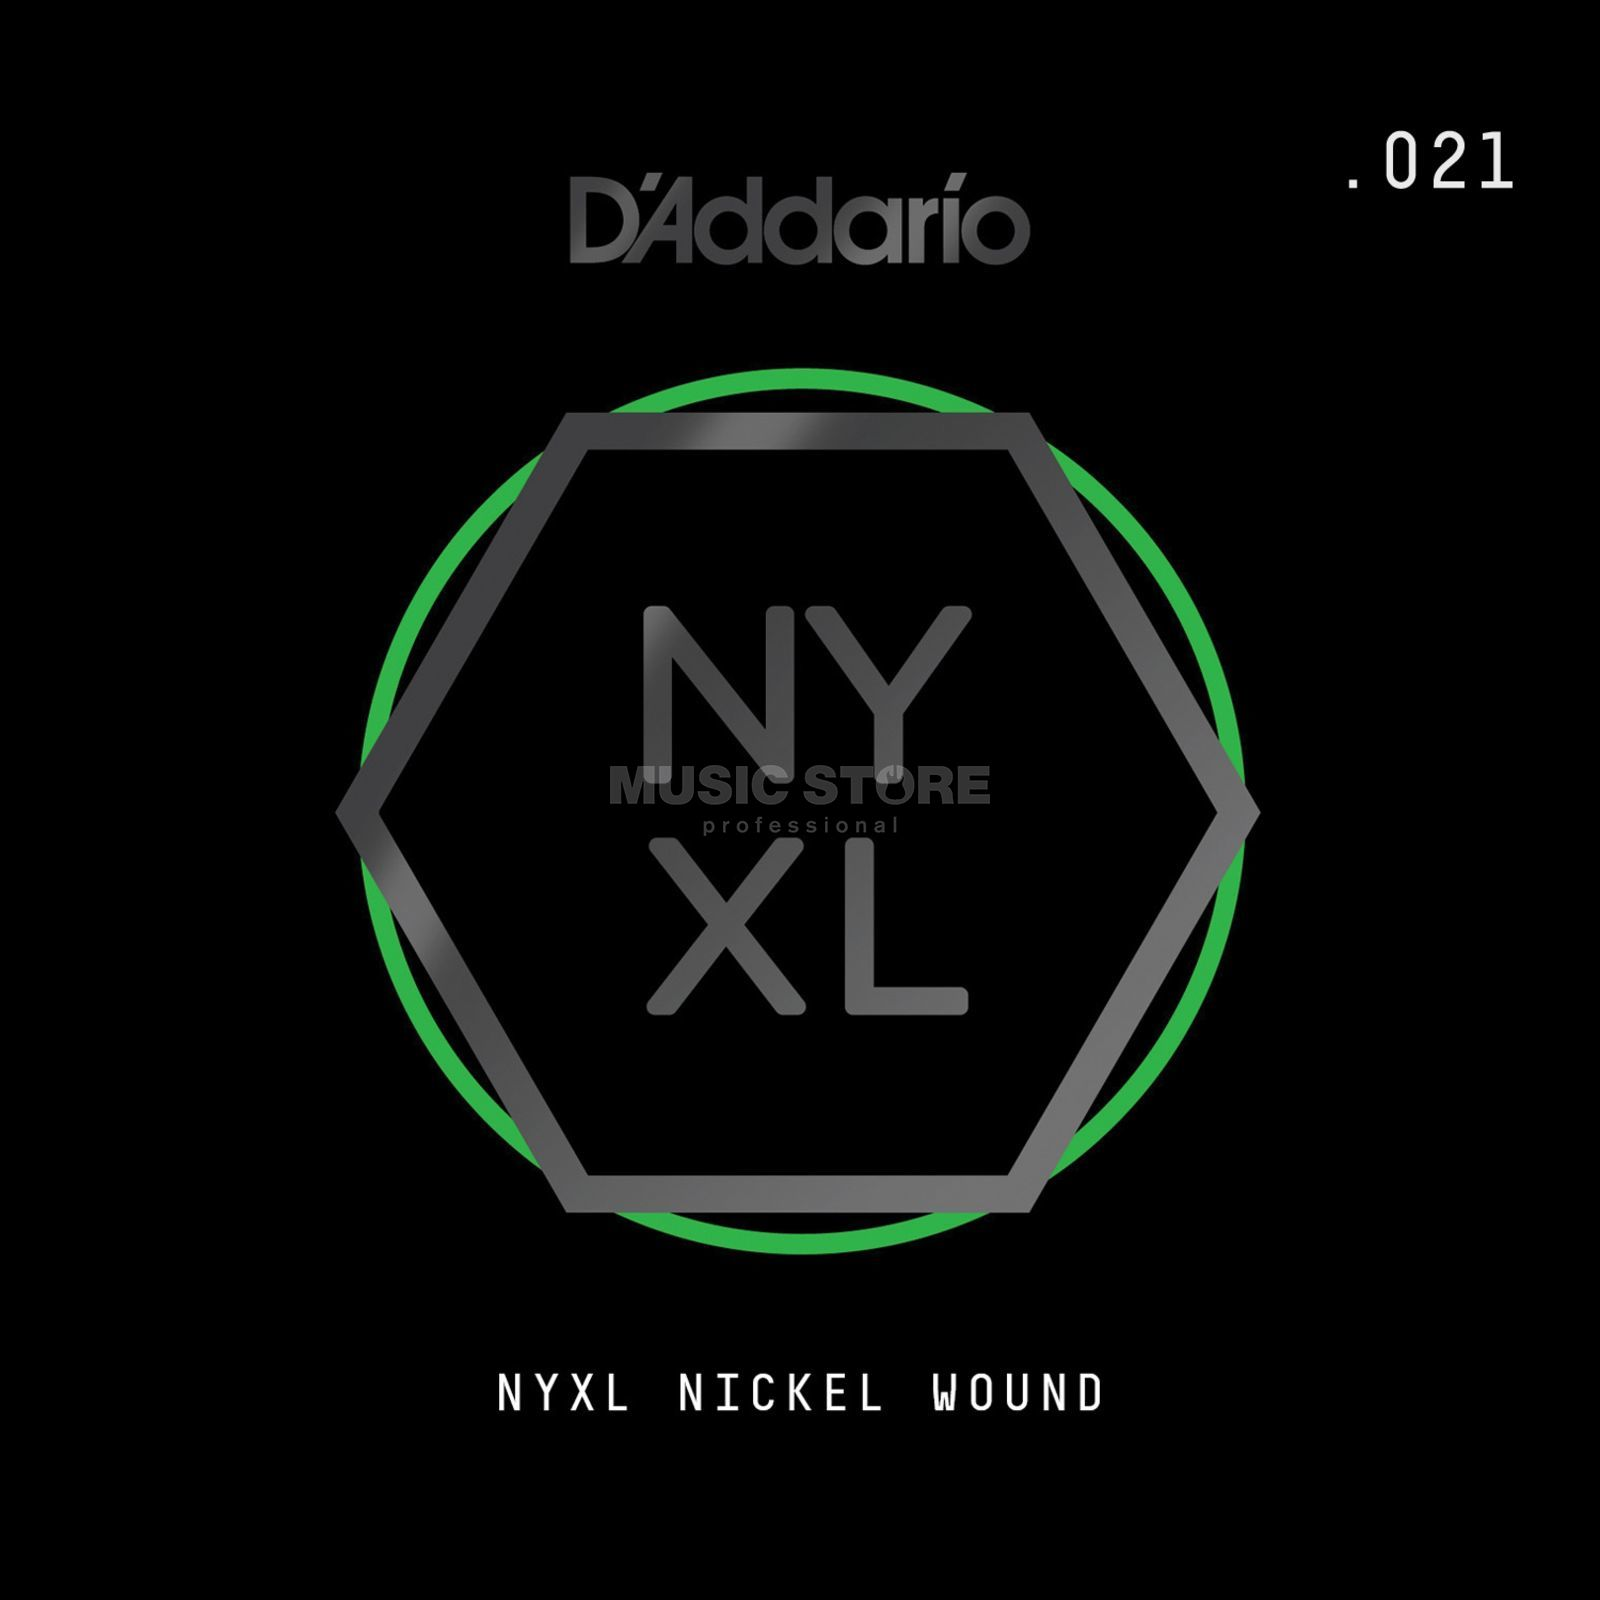 D'Addario NYNW021 Single String Nickel Wound Product Image